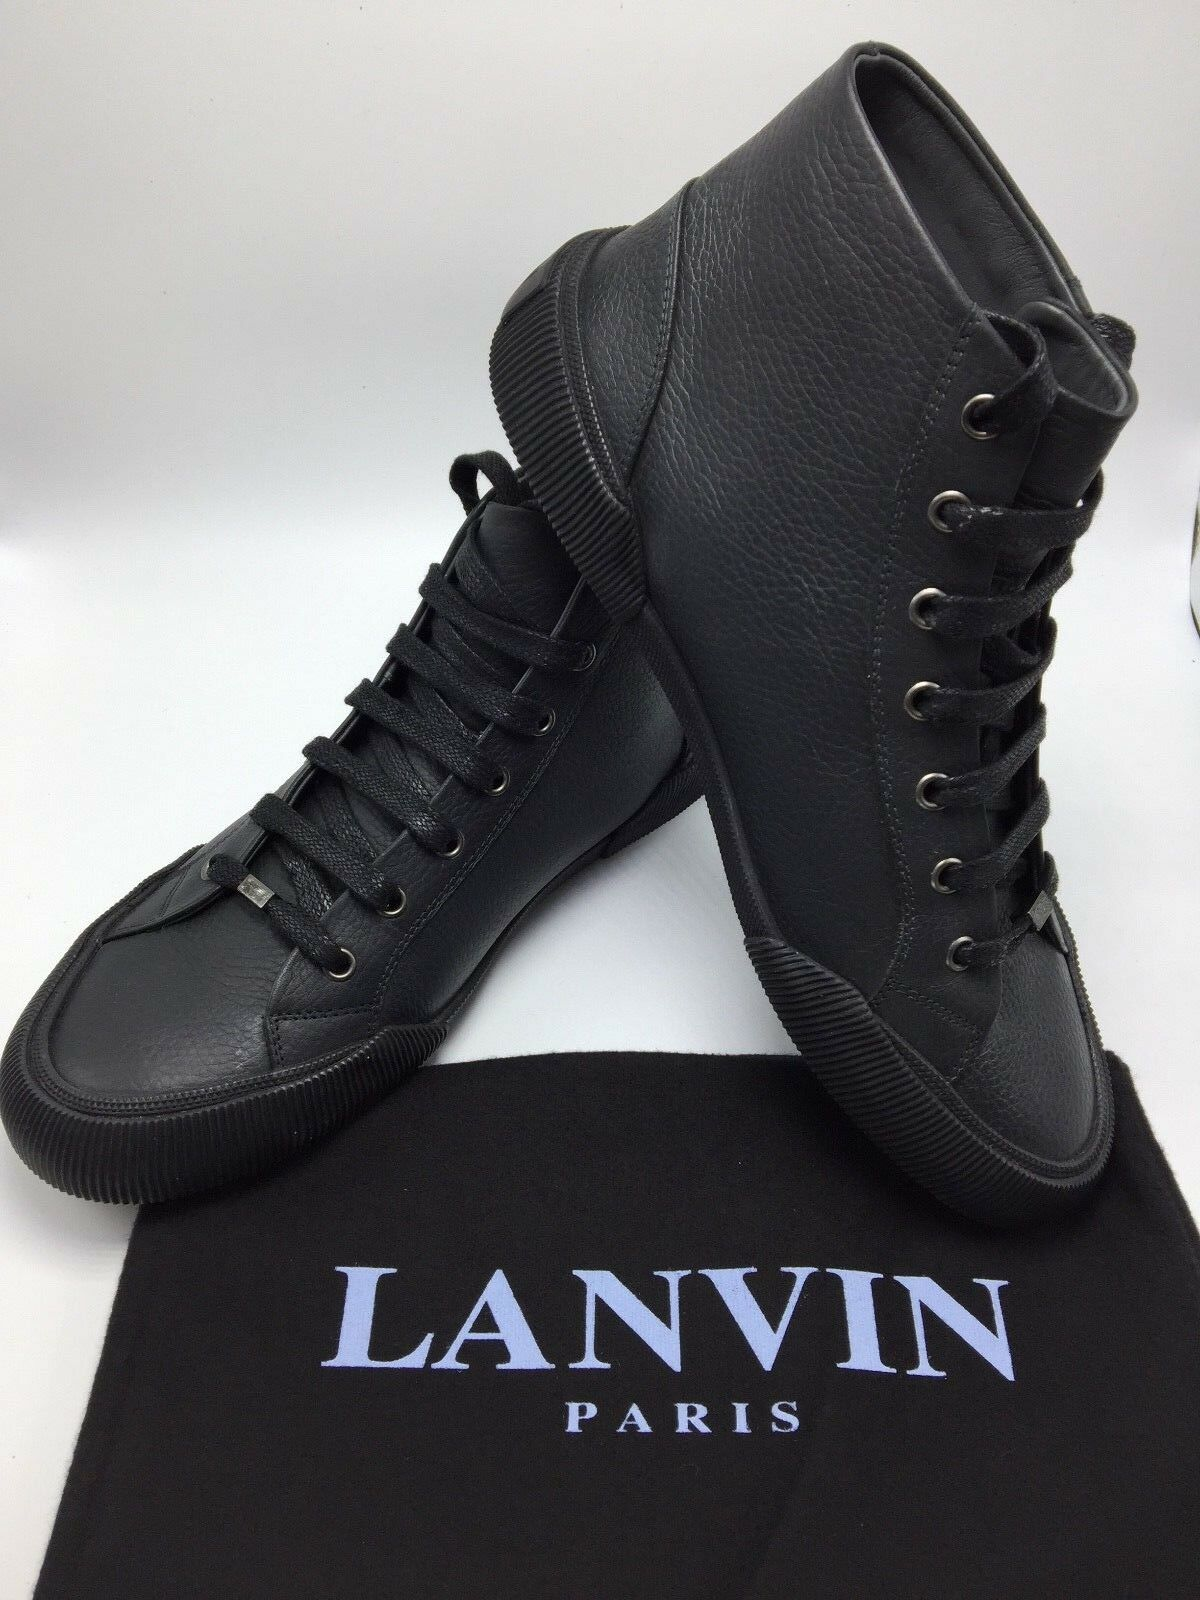 LANVIN Mid Top Think Sole Sneakers Size 7 New with Box